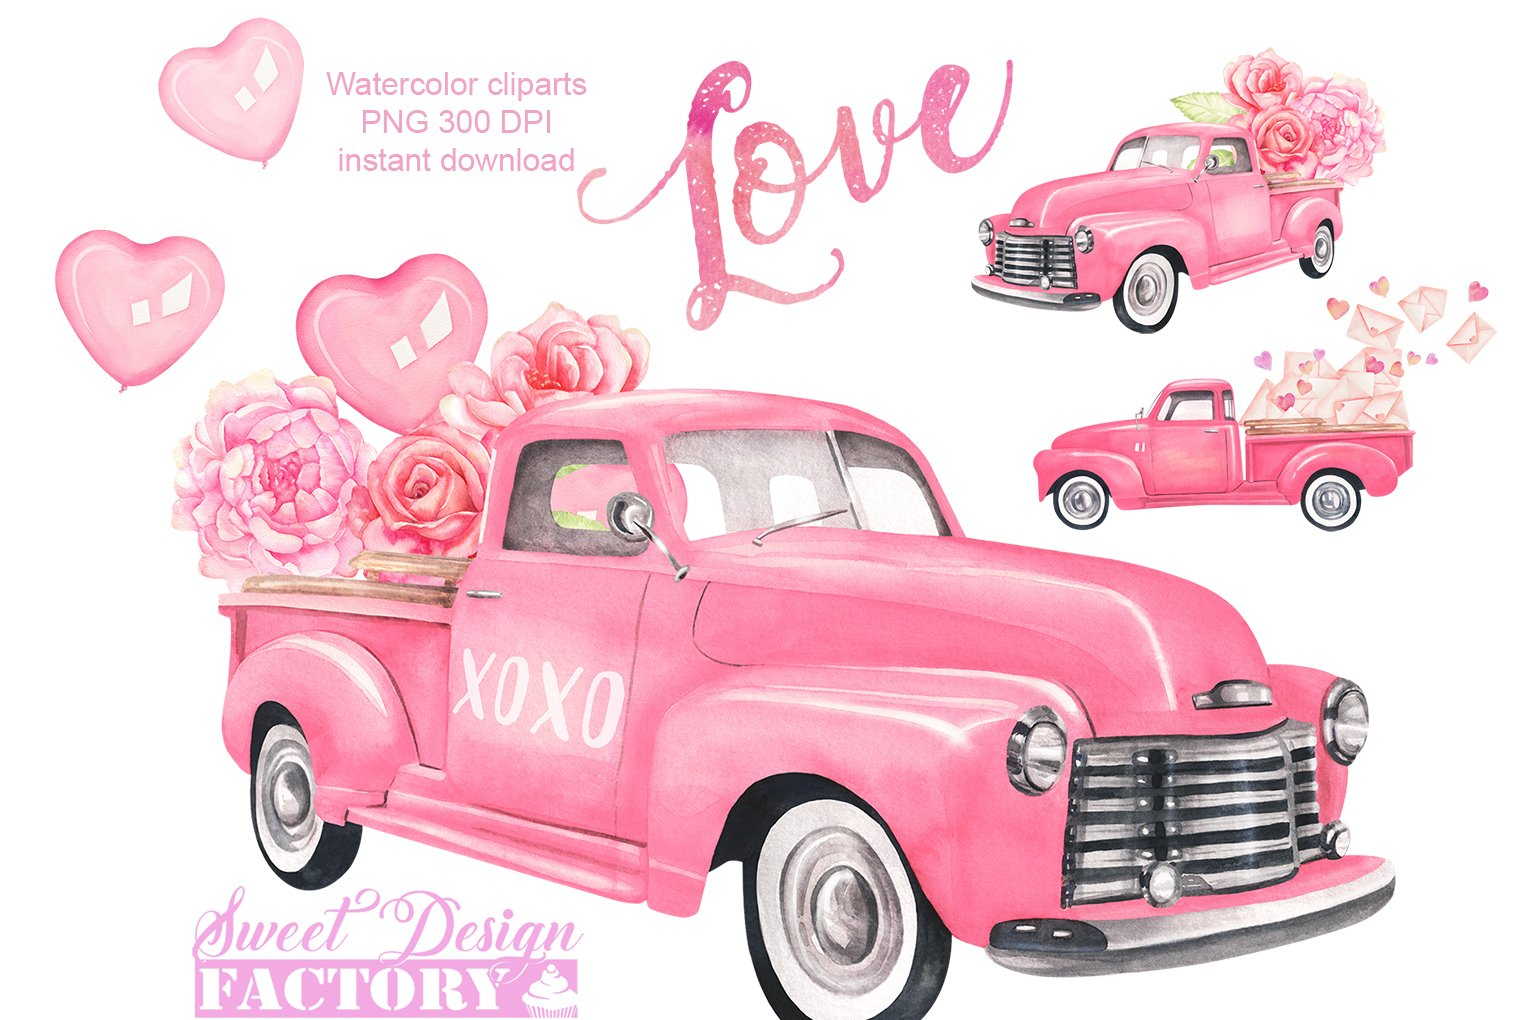 Valentine S Day Truck Watercolor Clipart 411396 Illustrations Design Bundles